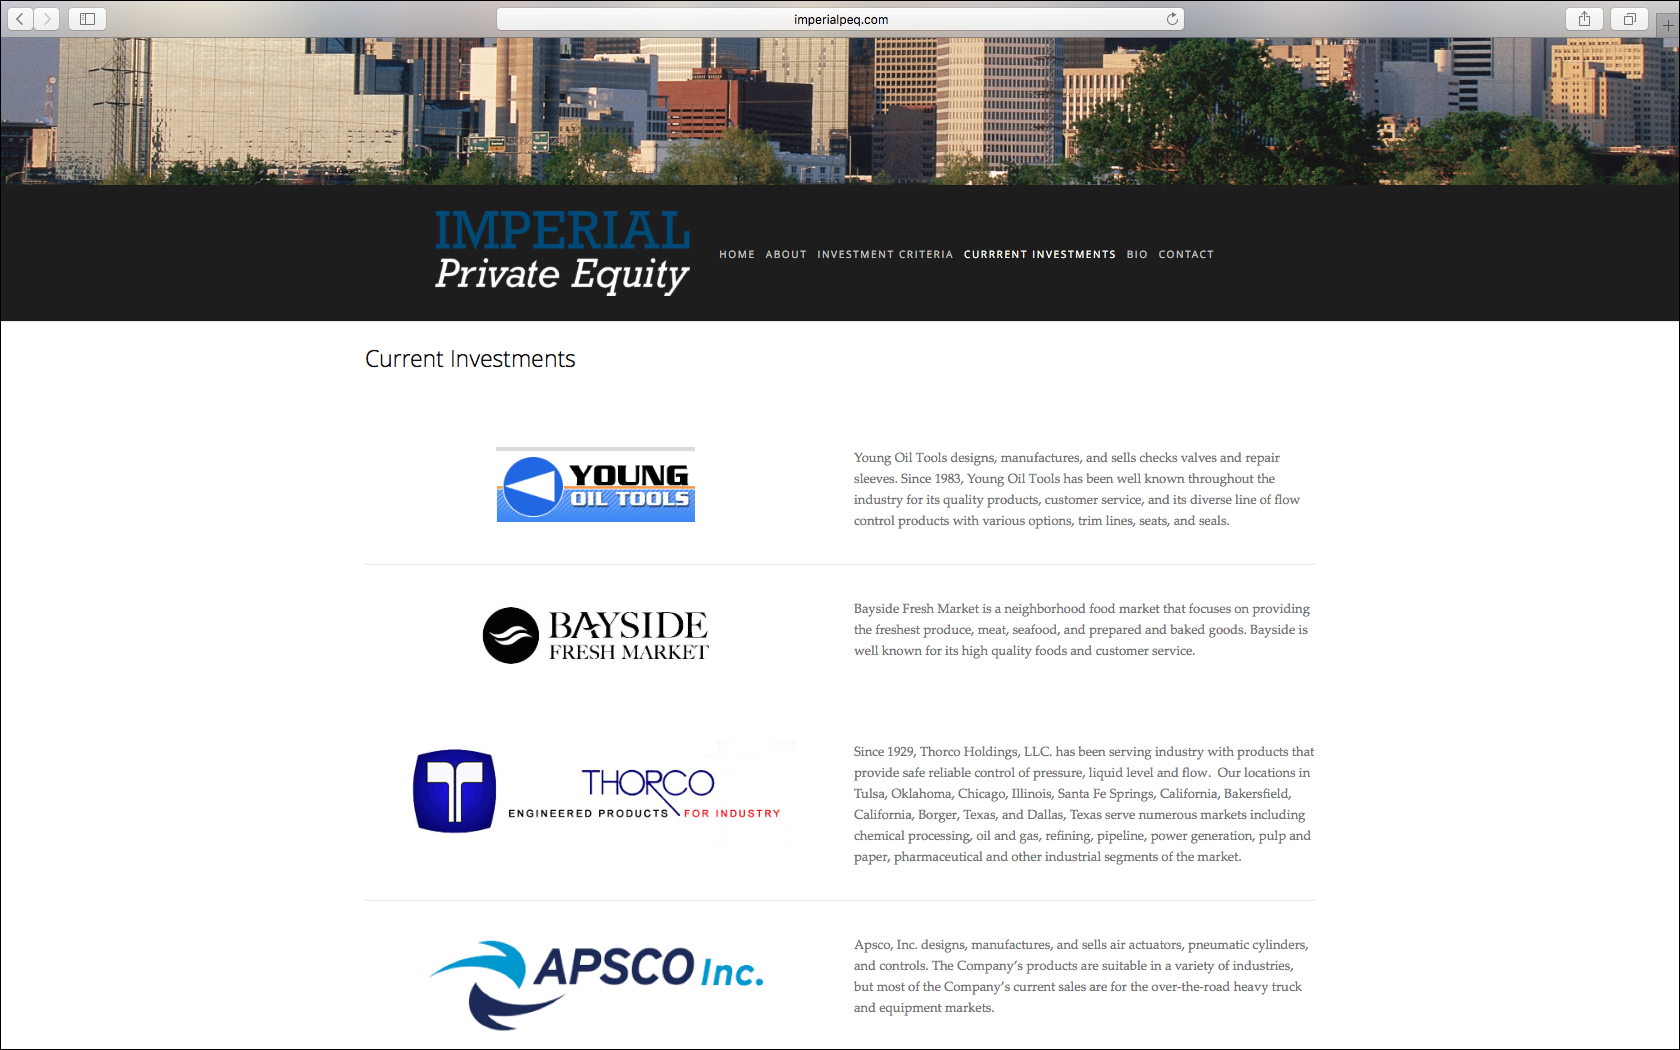 Imperial Private Equity Page Design - KLN Design